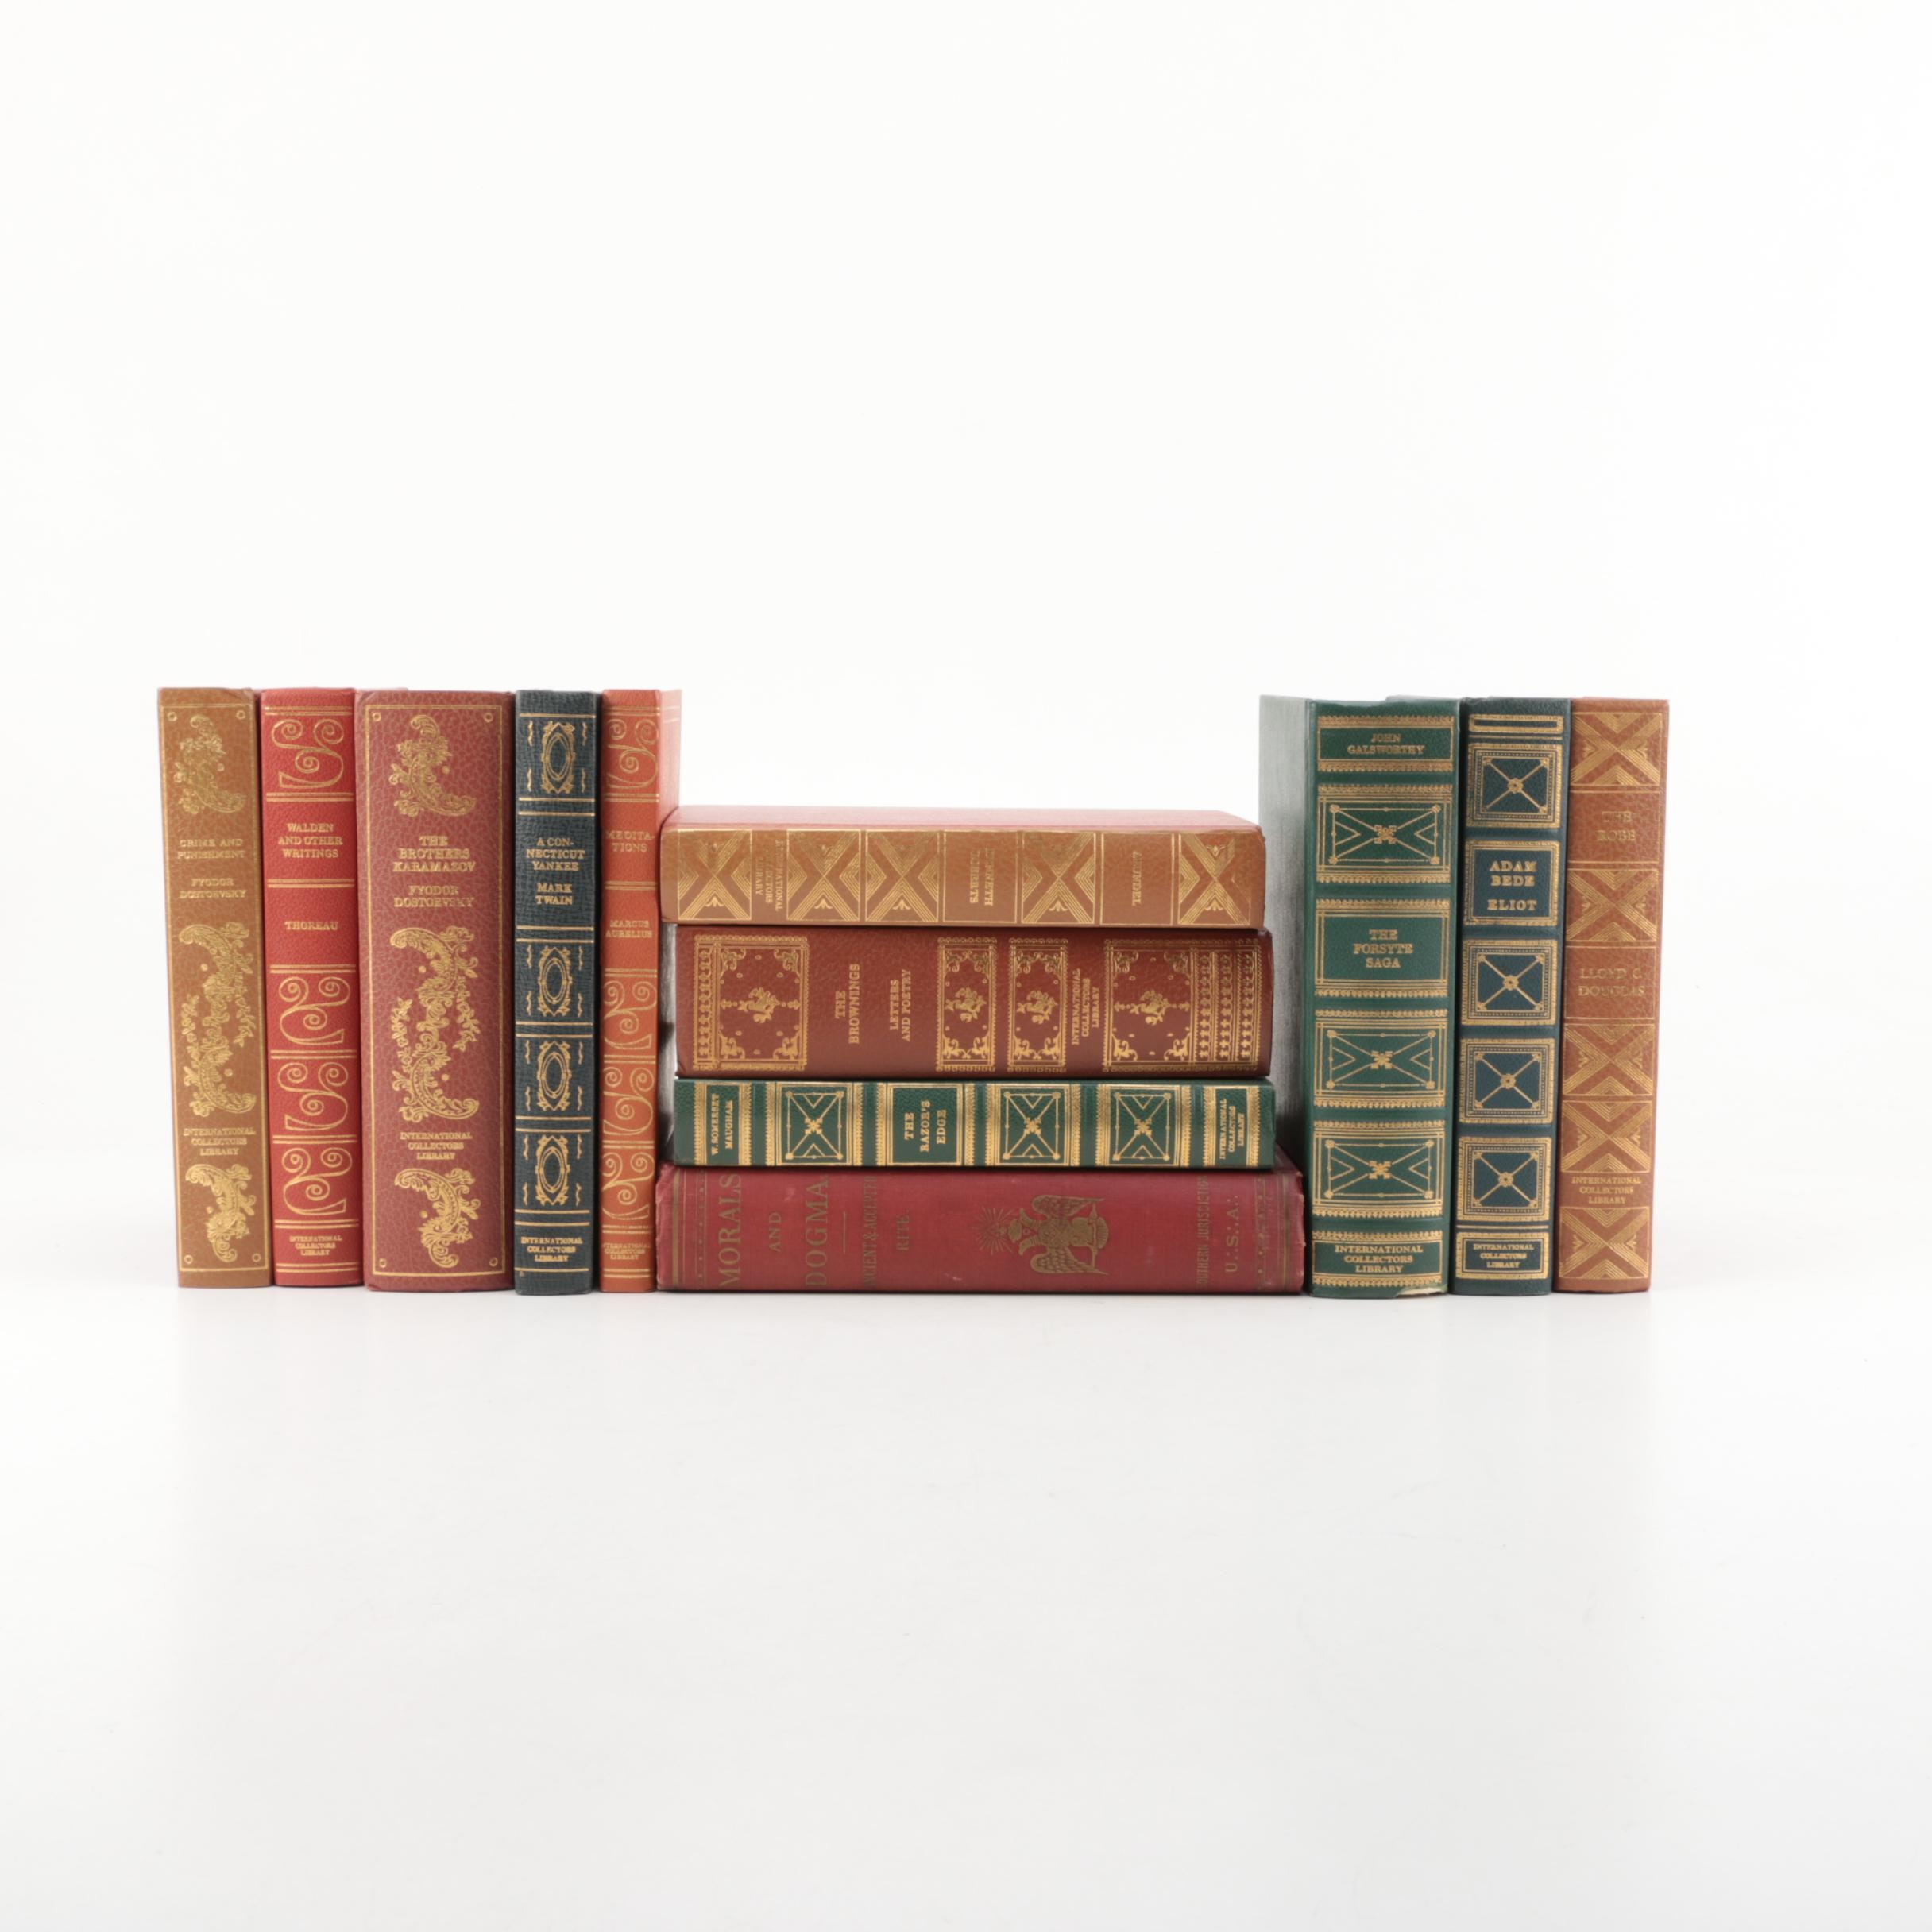 International Collectors Library Books, Including Twain, Thoreau and Others